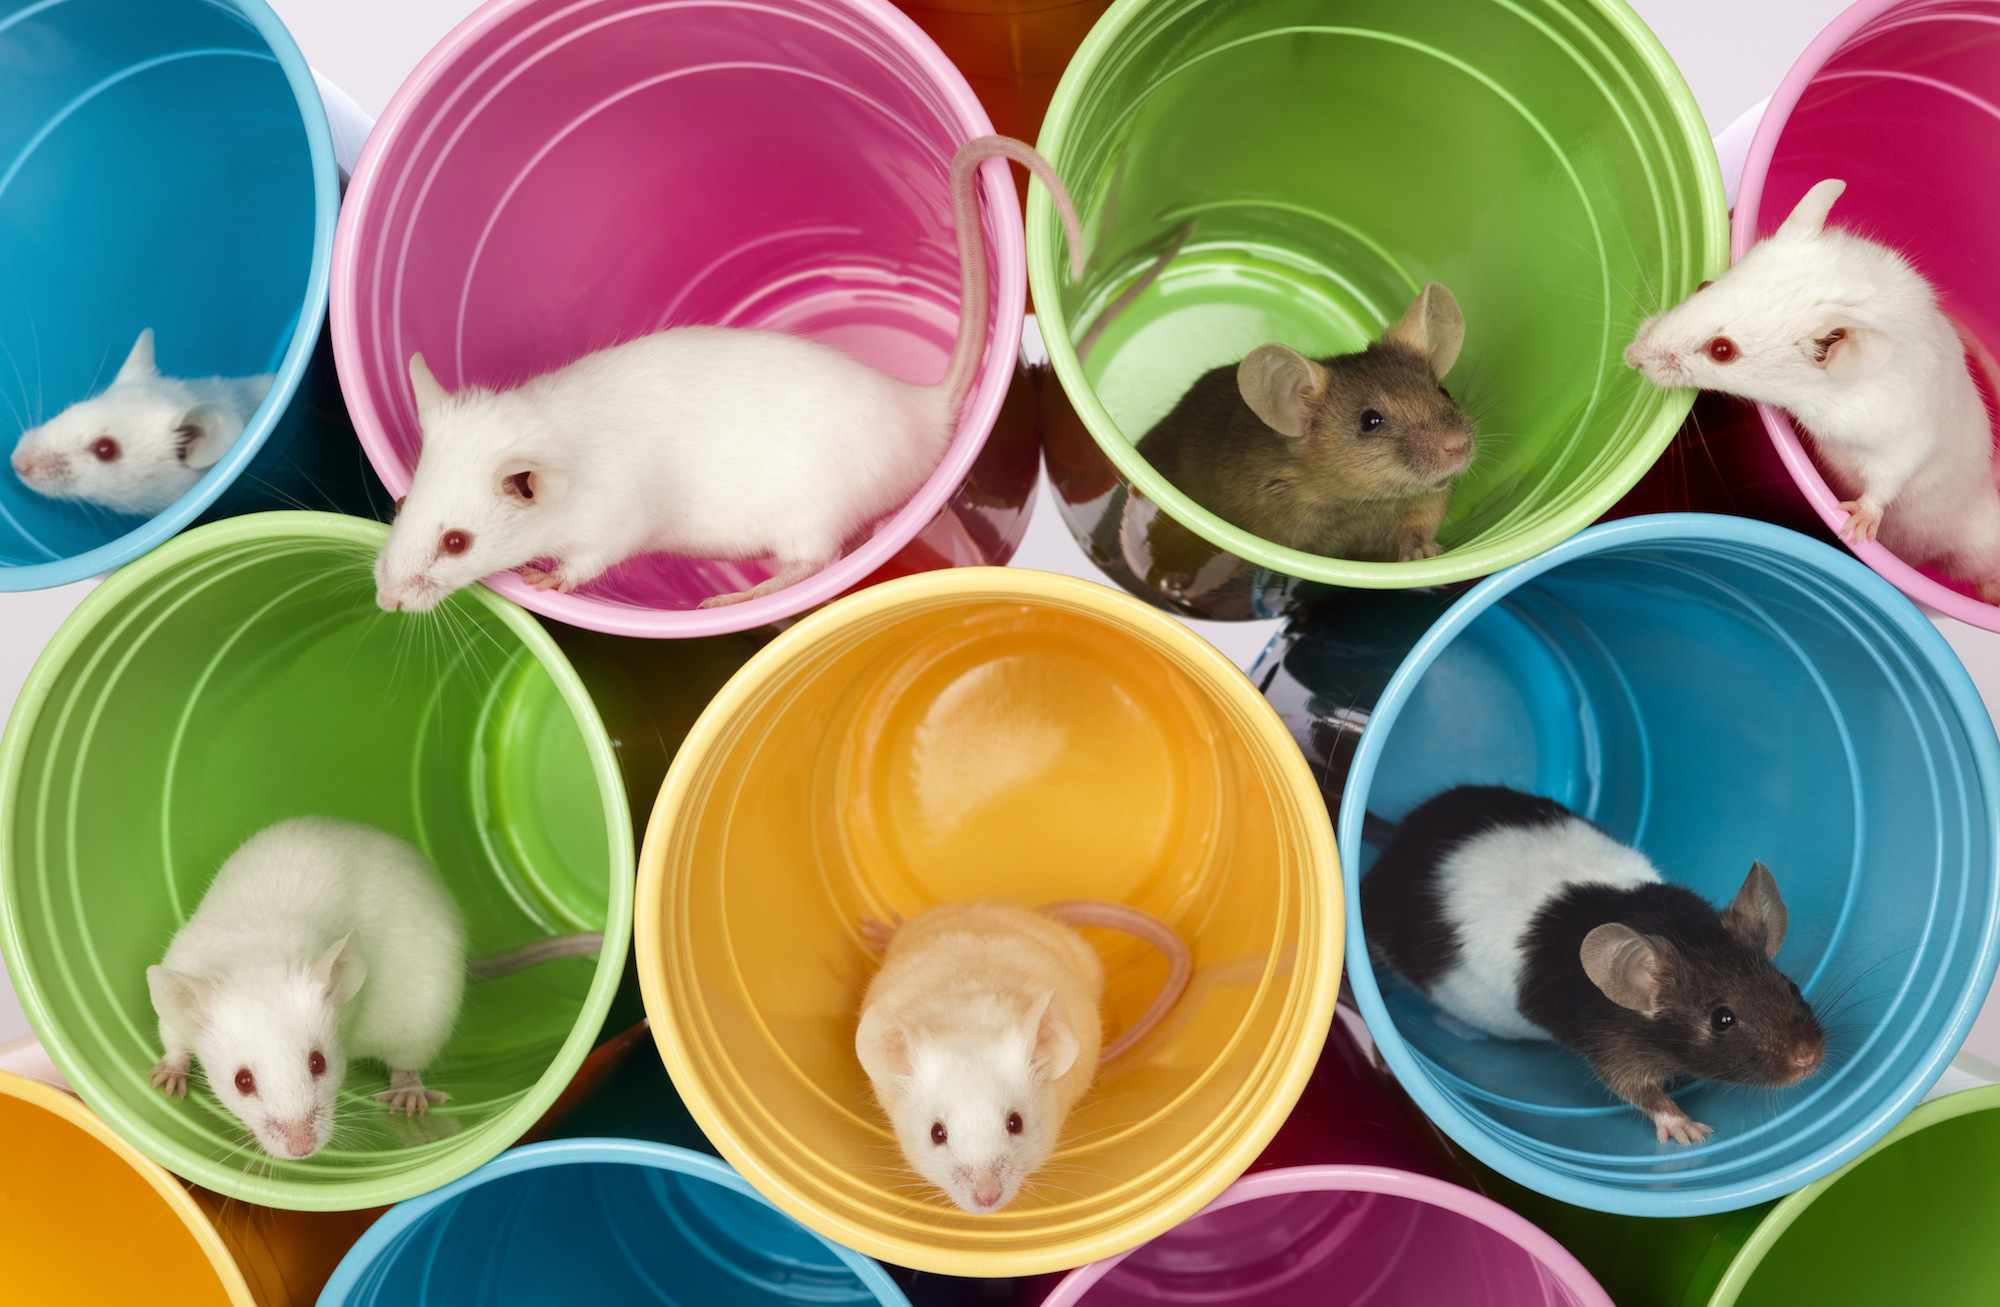 Mice sitting in colorful cups